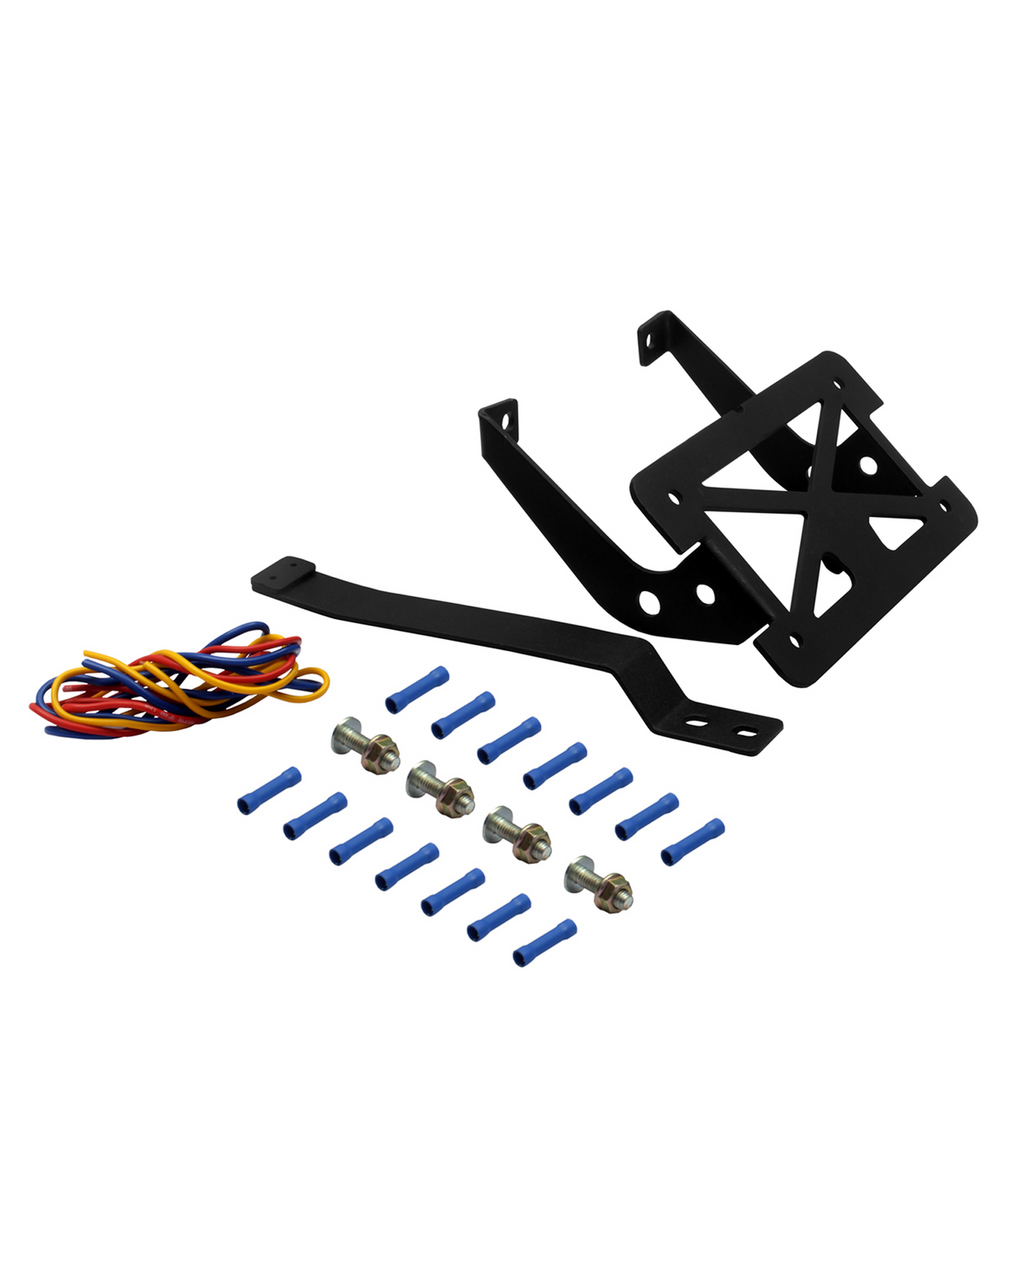 License Plate And Turn Signal Relocation Kit For Harley Davidson Softail with Nets and Bolts